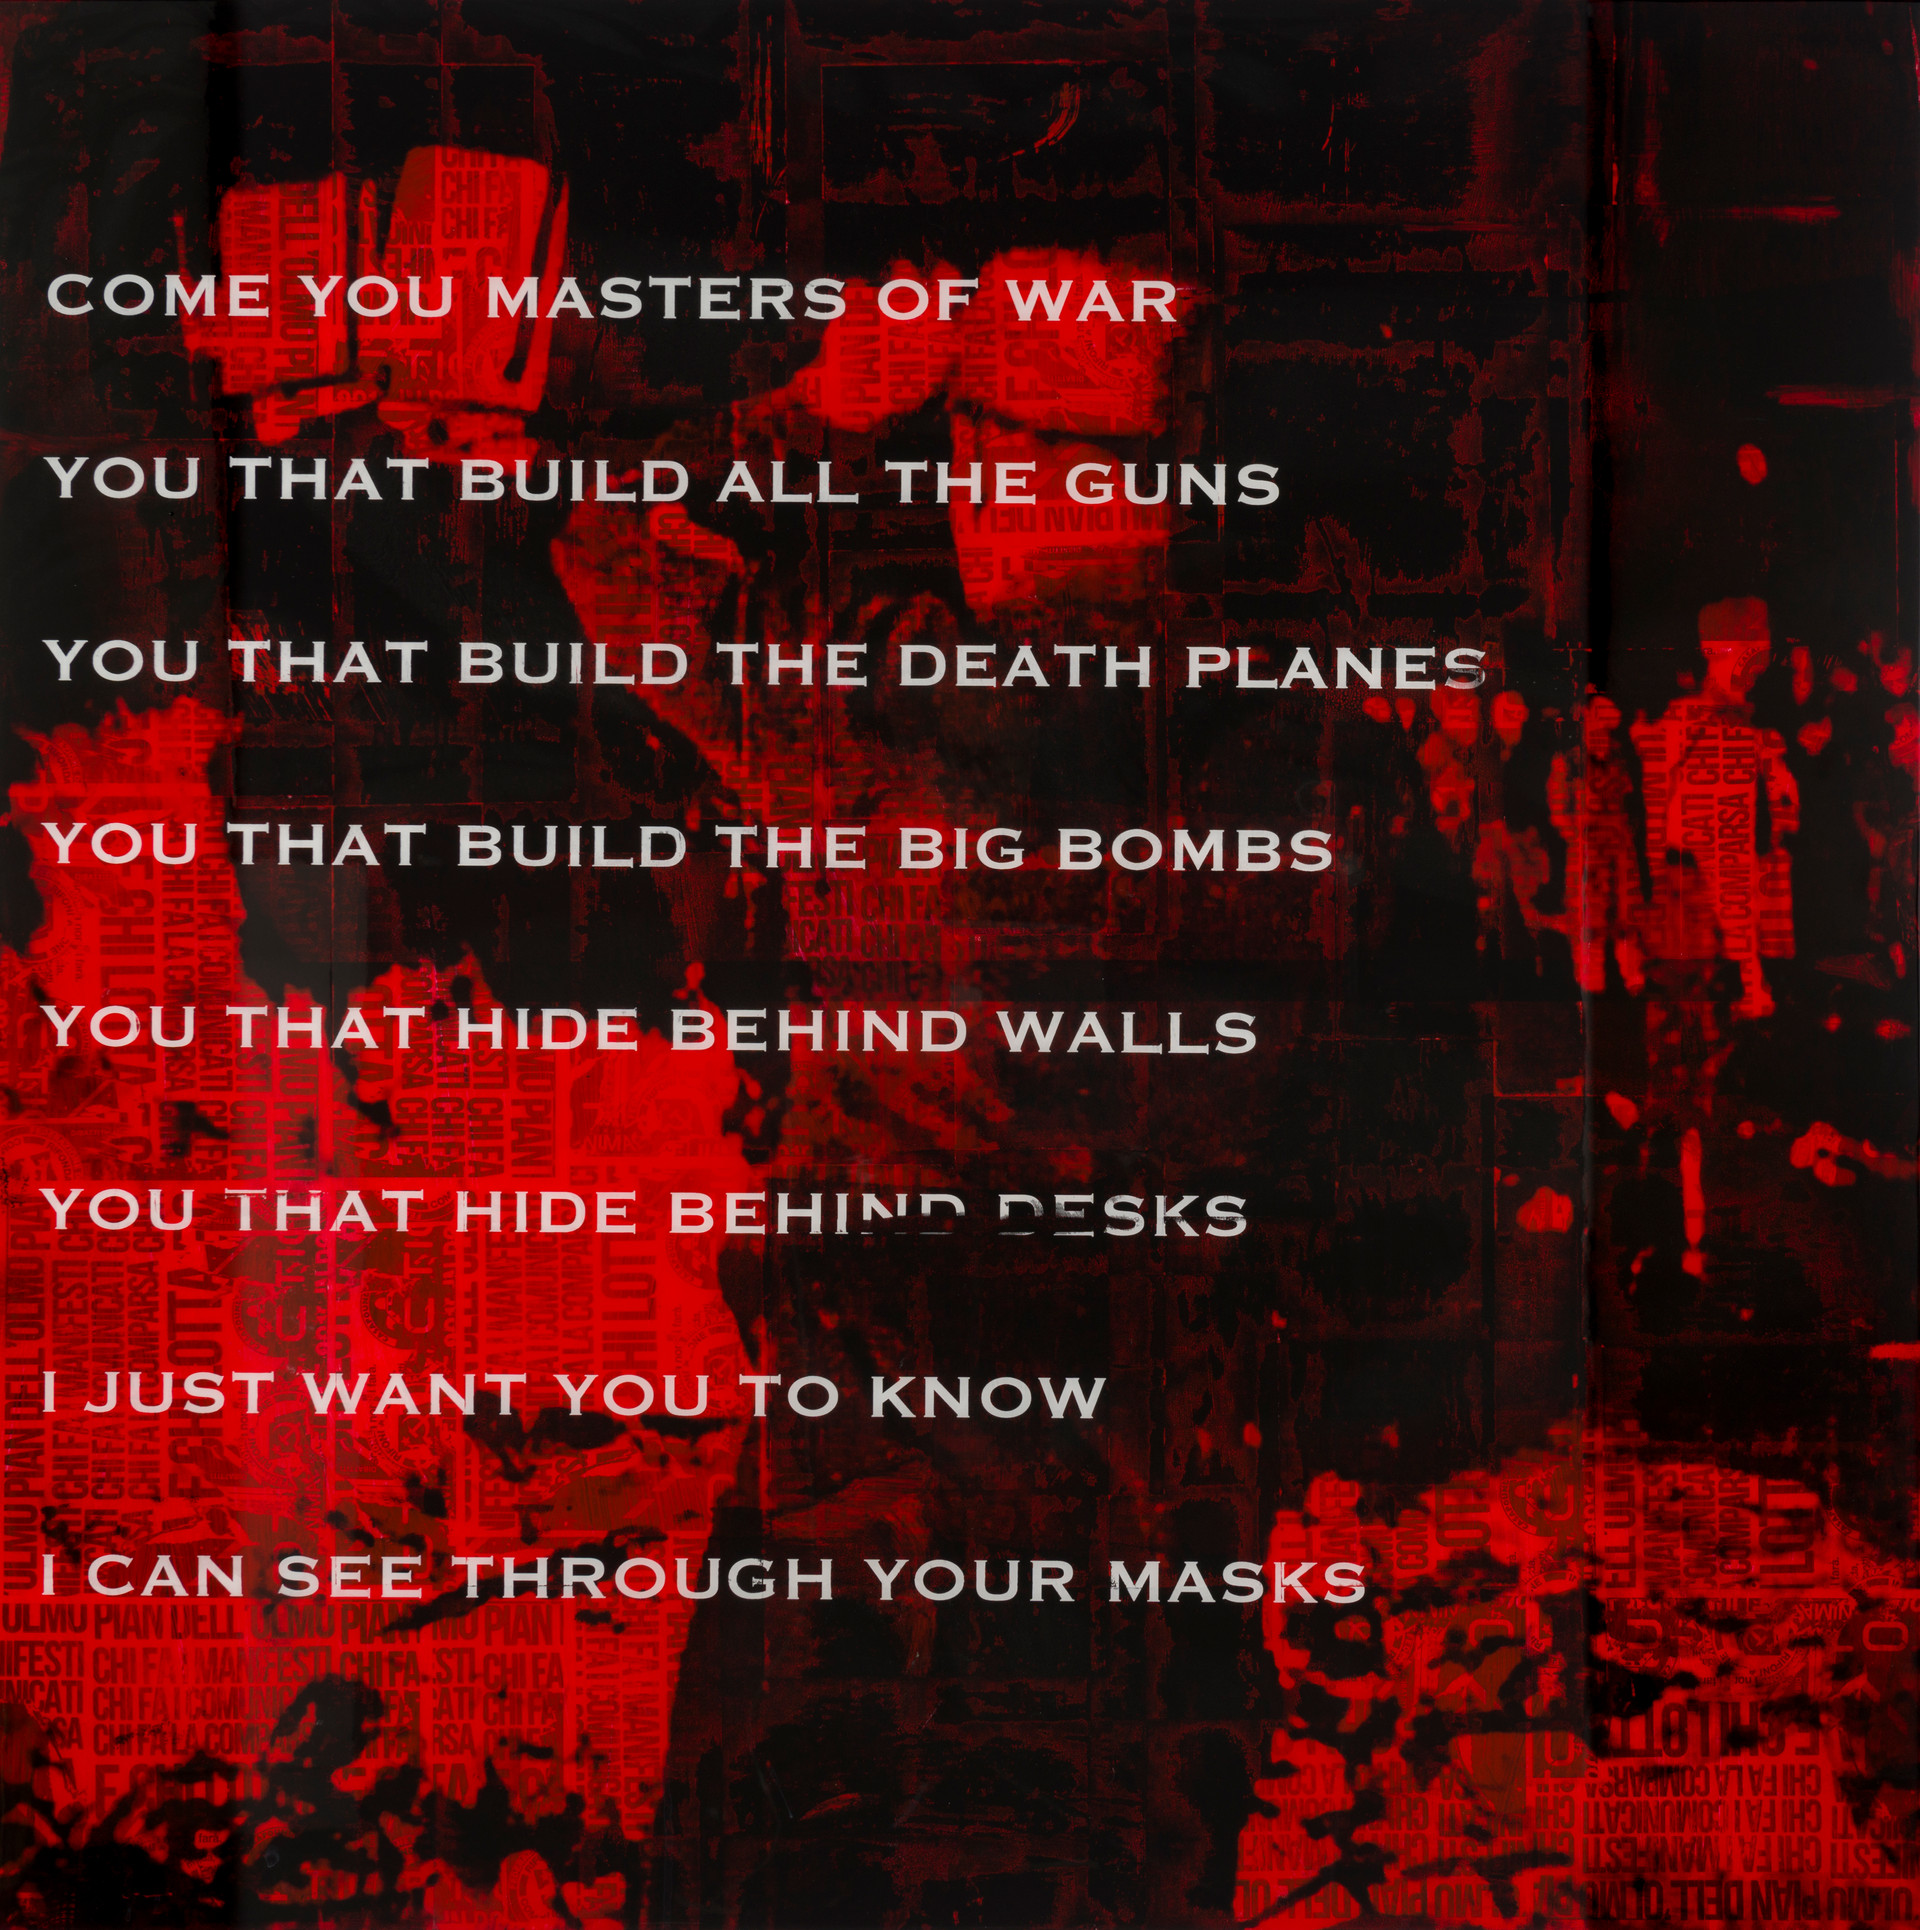 YOU THAT BUILD ALL THE GUNS